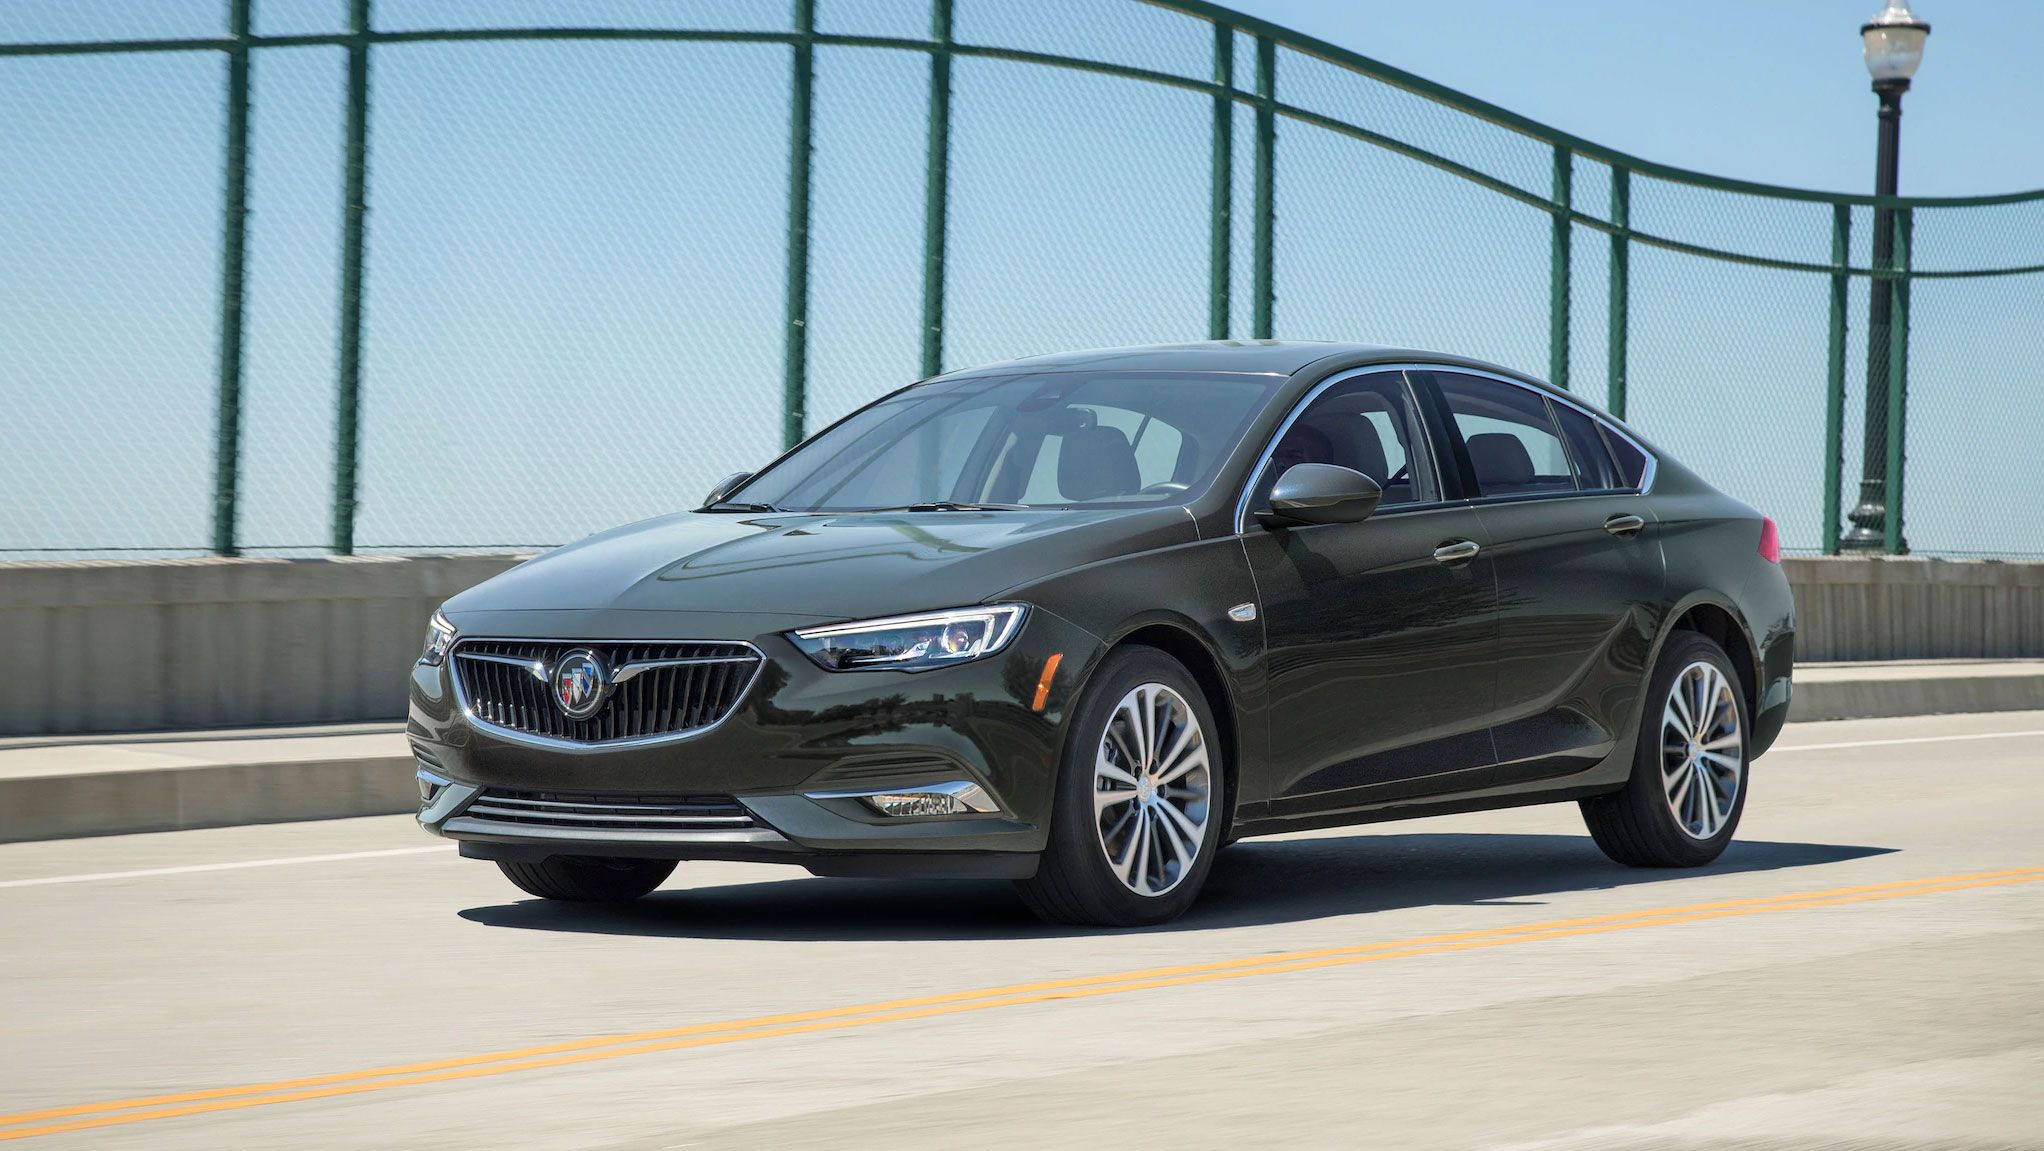 2020 Buick Regal Sportback Review, Pricing, And Specs New 2021 Buick Regal Msrp, Models, Manual